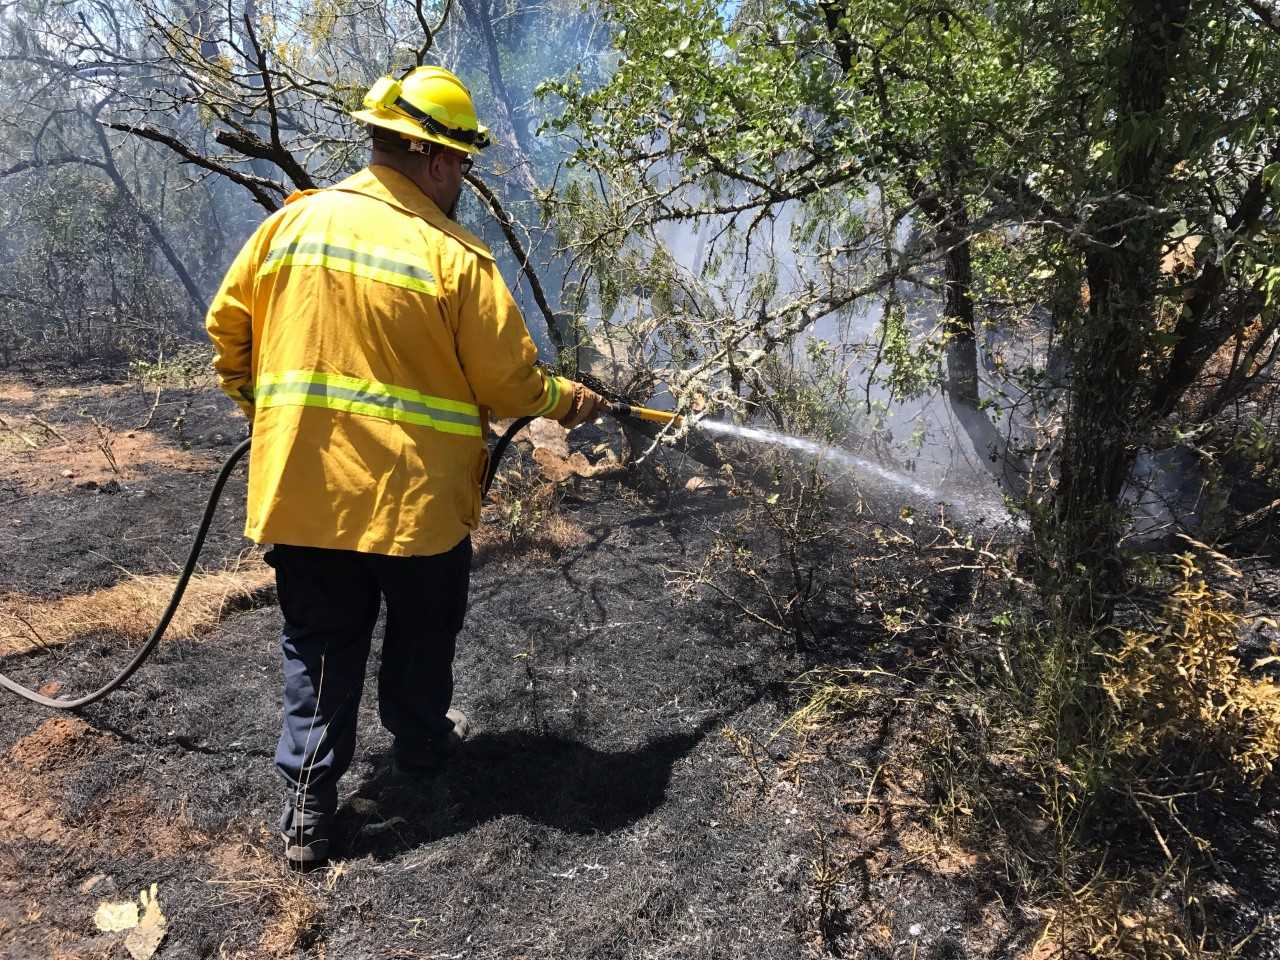 Crews mopping up a brush fire on Synergy Drive near Bastrop, Texas on July 5, 2017_501439